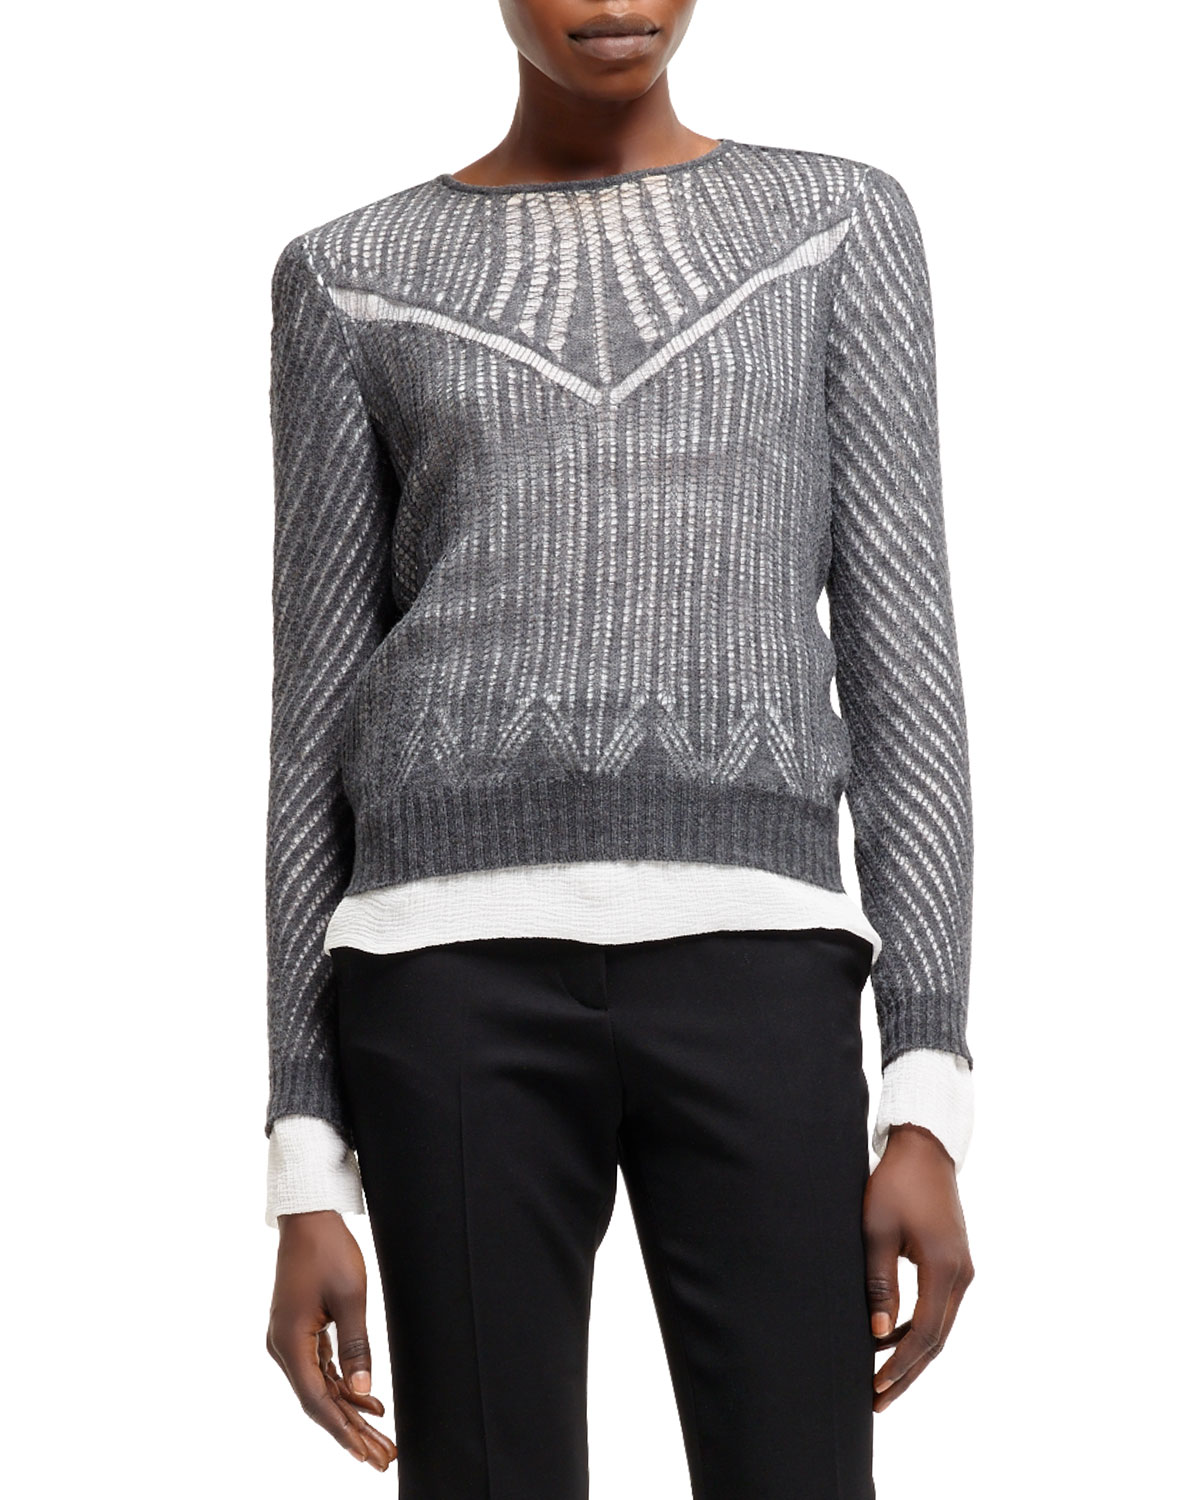 Womens Spider Lace Knit Long Sleeve Top   Alexander McQueen   Gray (LARGE)